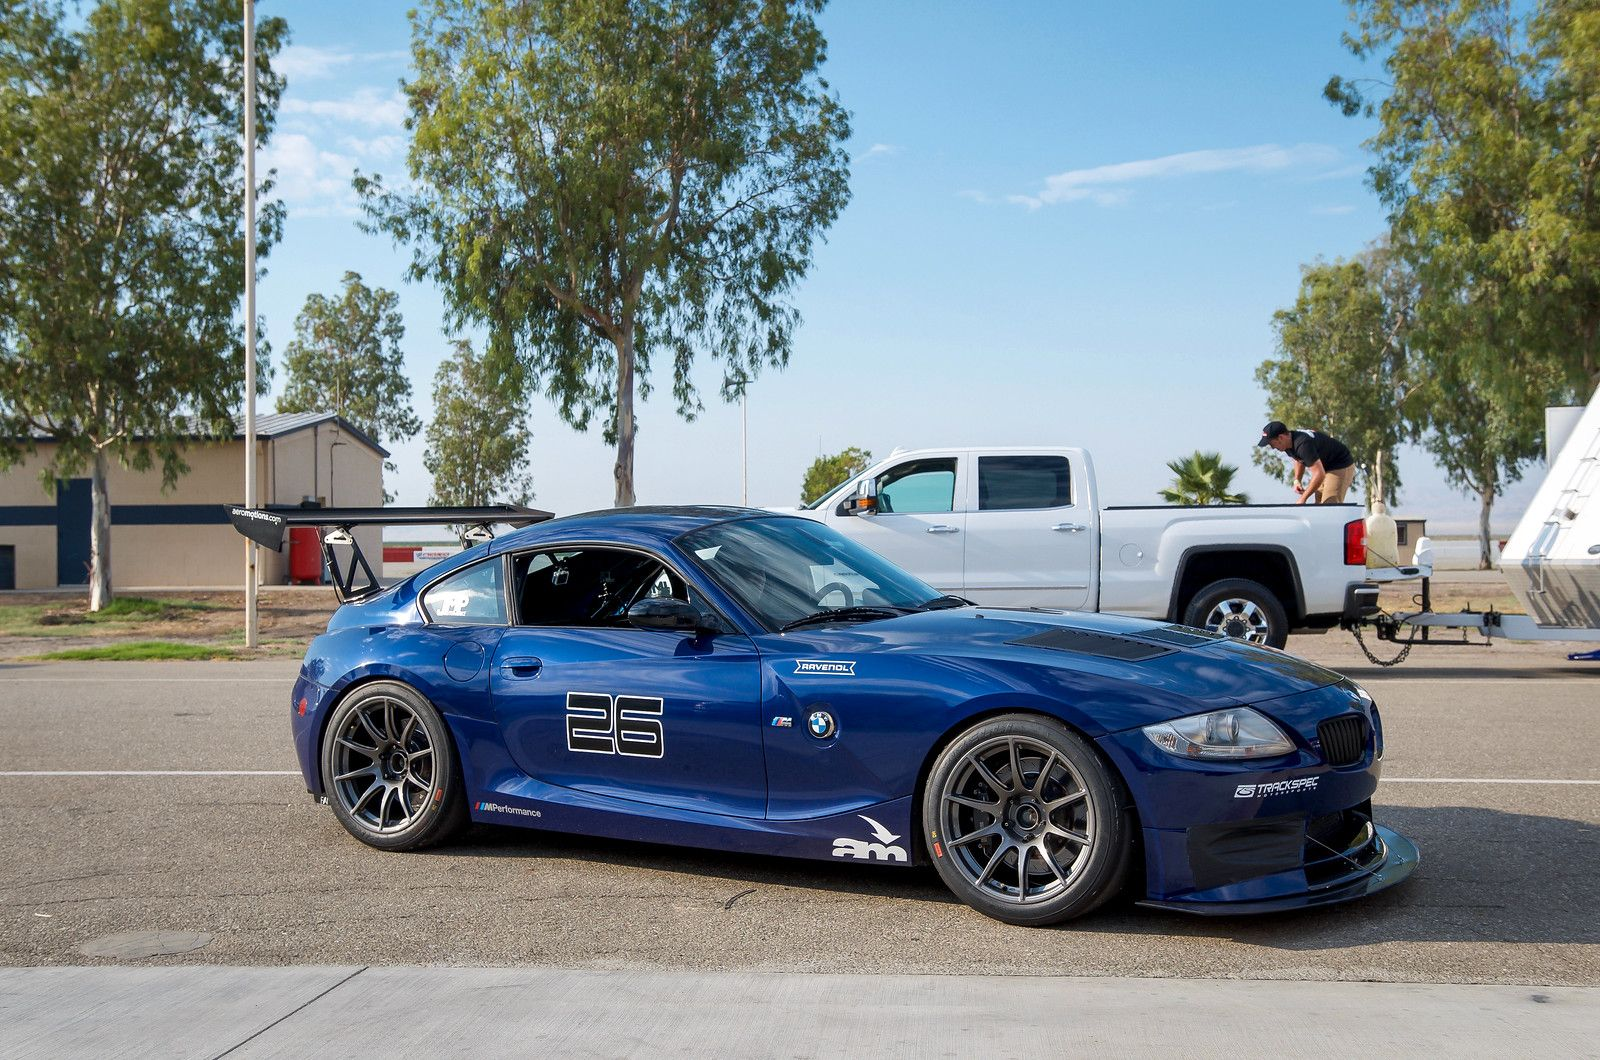 Track Spec Z4m Coupe Ready To Set Some Lap Records With Images